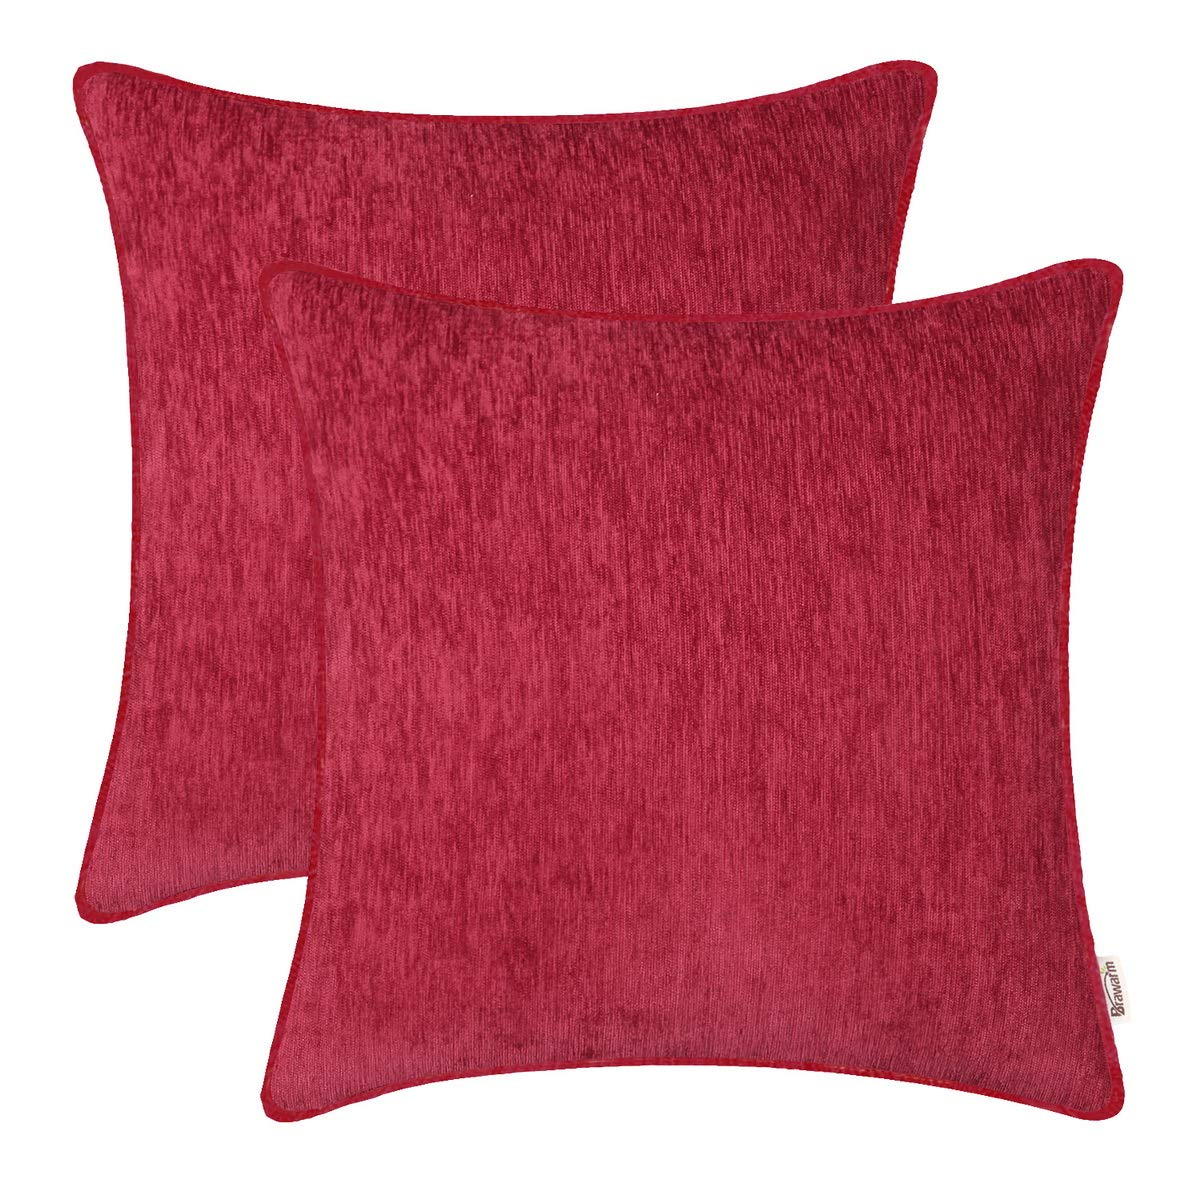 BRAWARM Pack of 2 Cozy Throw Pillow Covers Cases for Sofa Couch Home Decoration Solid Dyed Striped Soft Chenille with Piping 16 X 16 Inches Burgundy